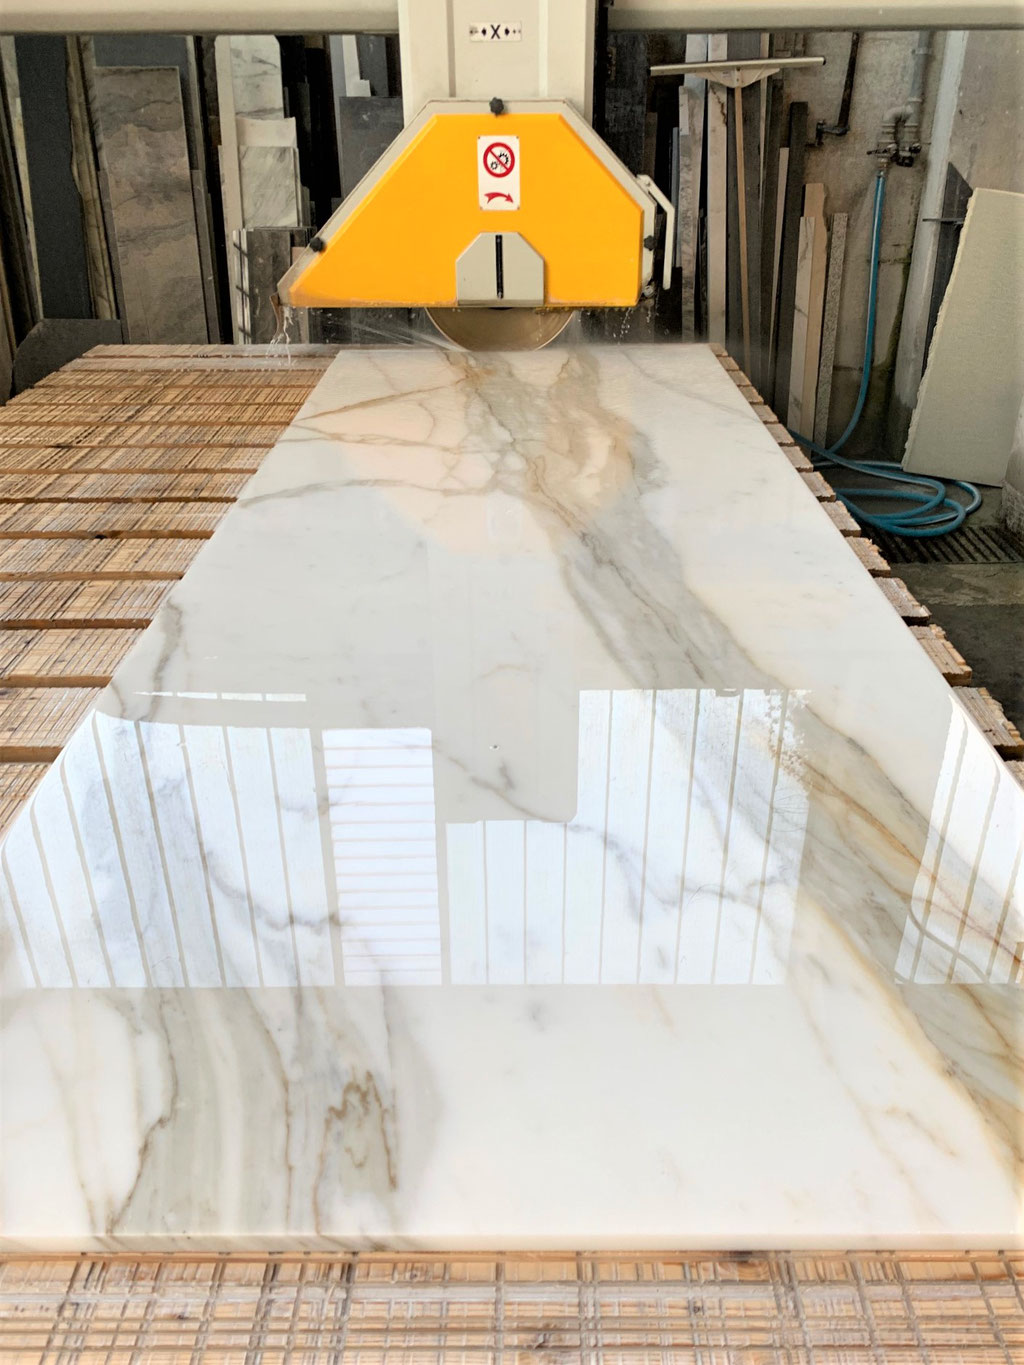 Calacatta Borghini marble in production